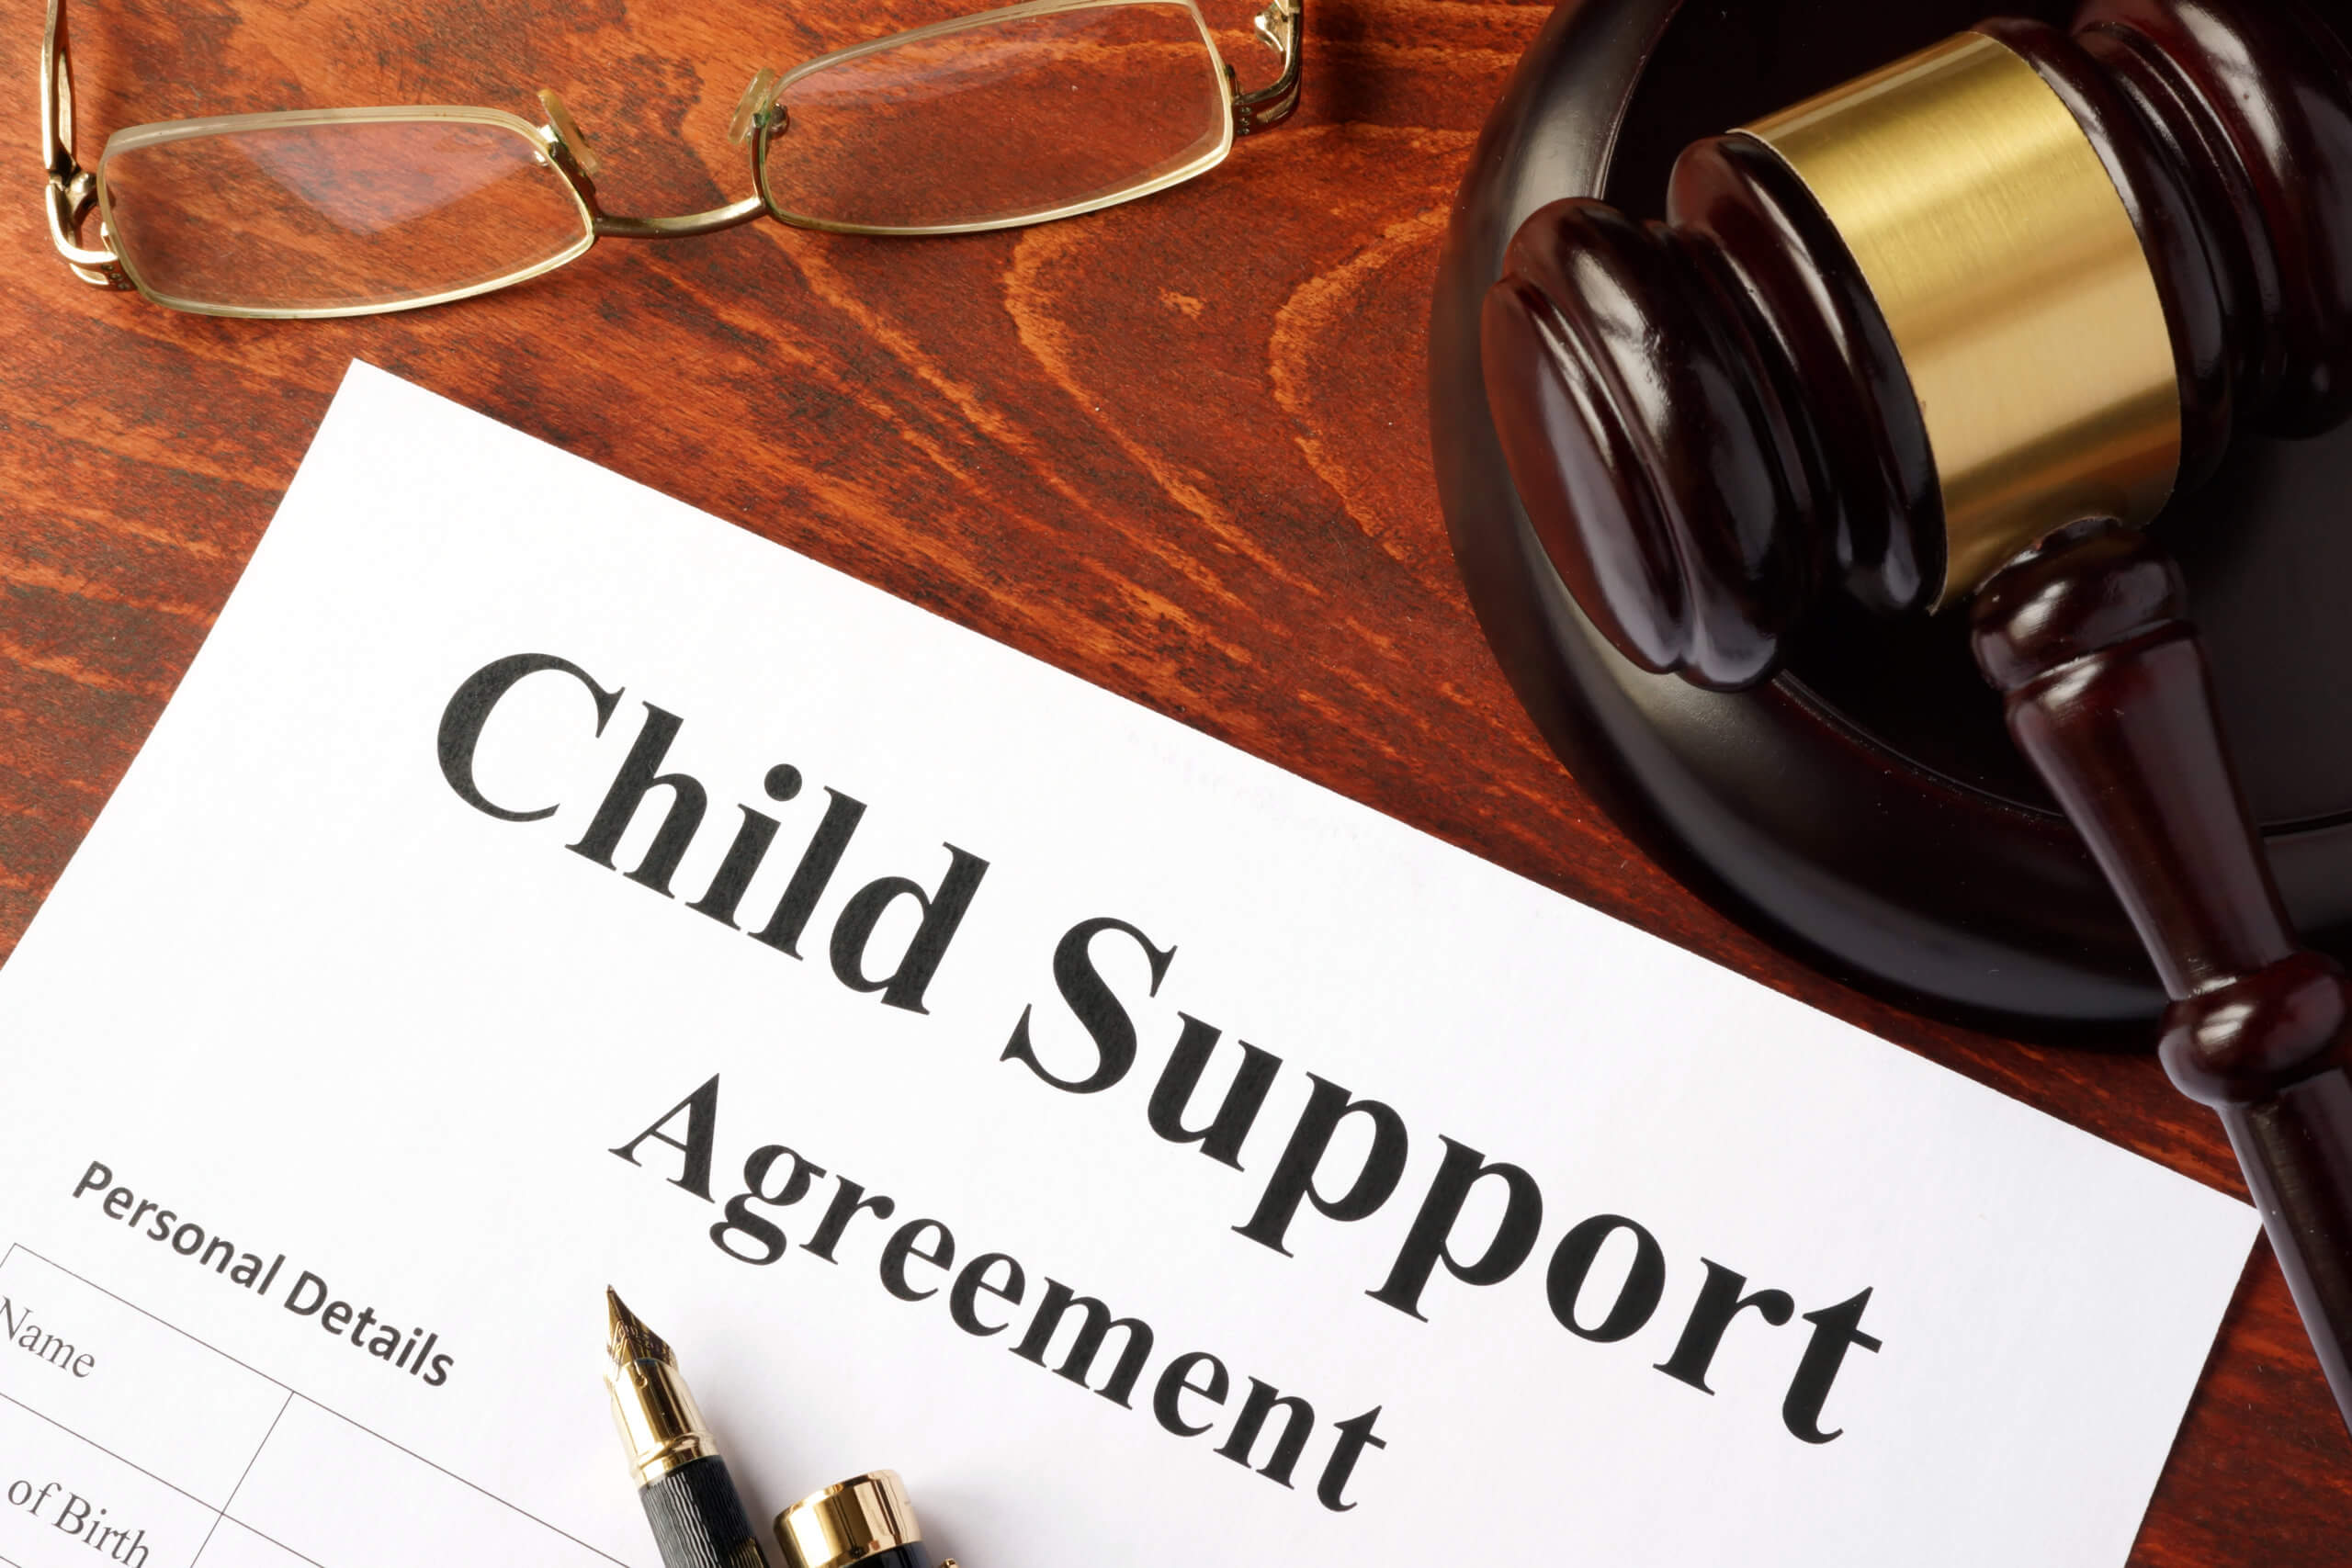 Cannot afford child support